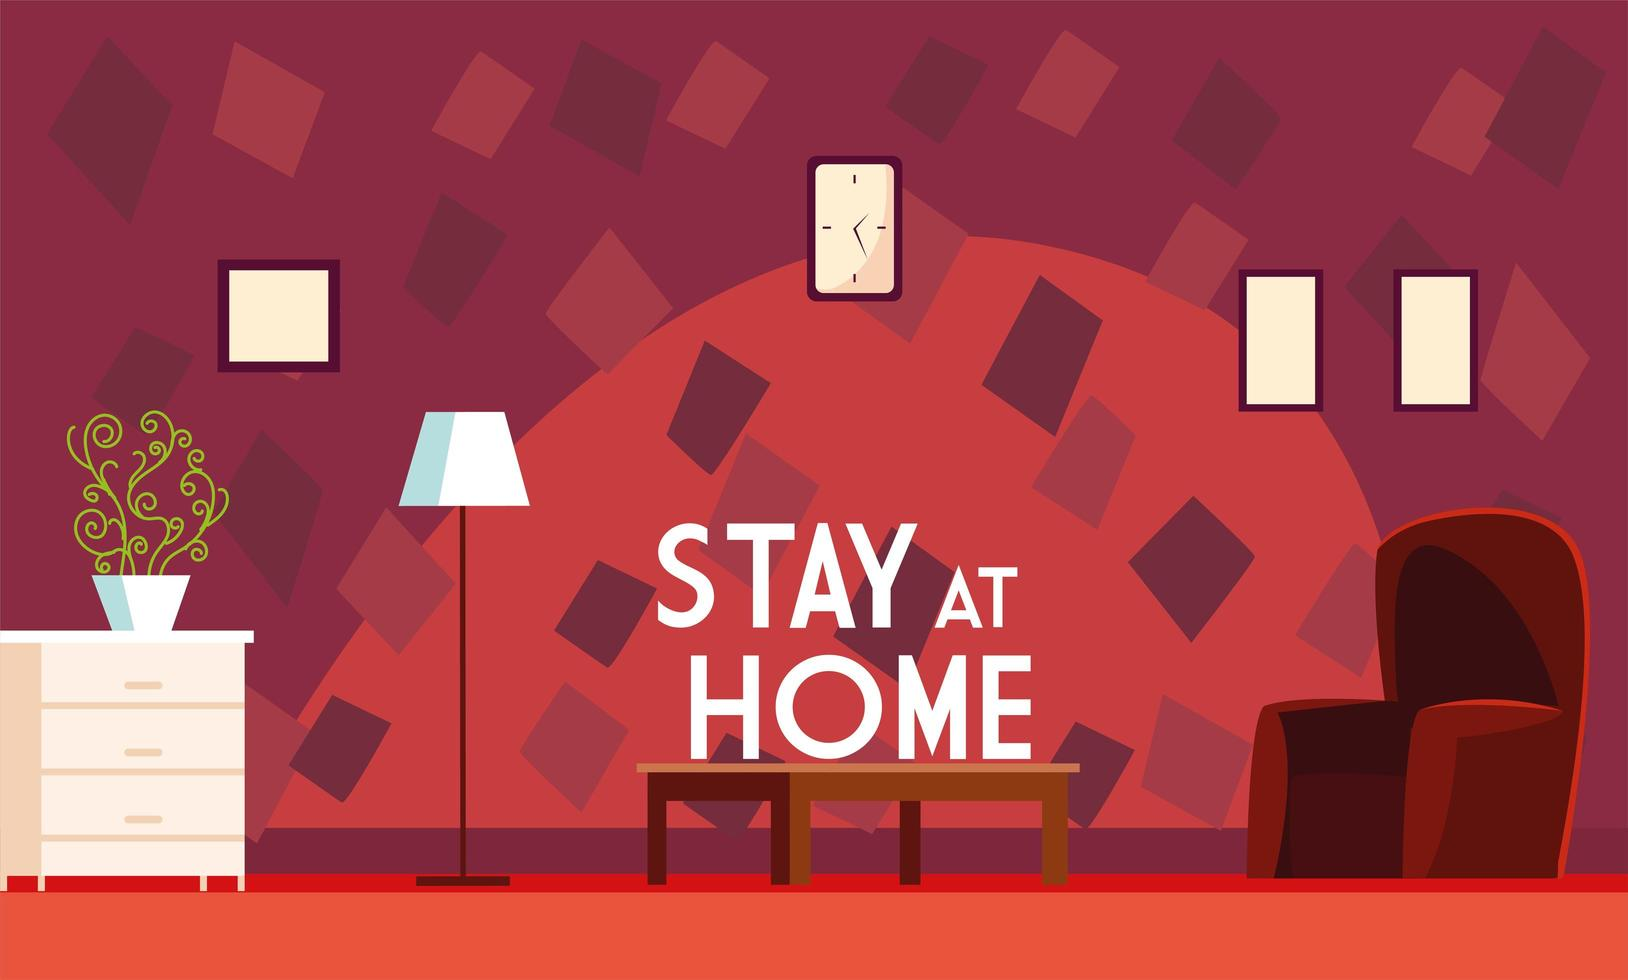 Stay at home text in red living room vector